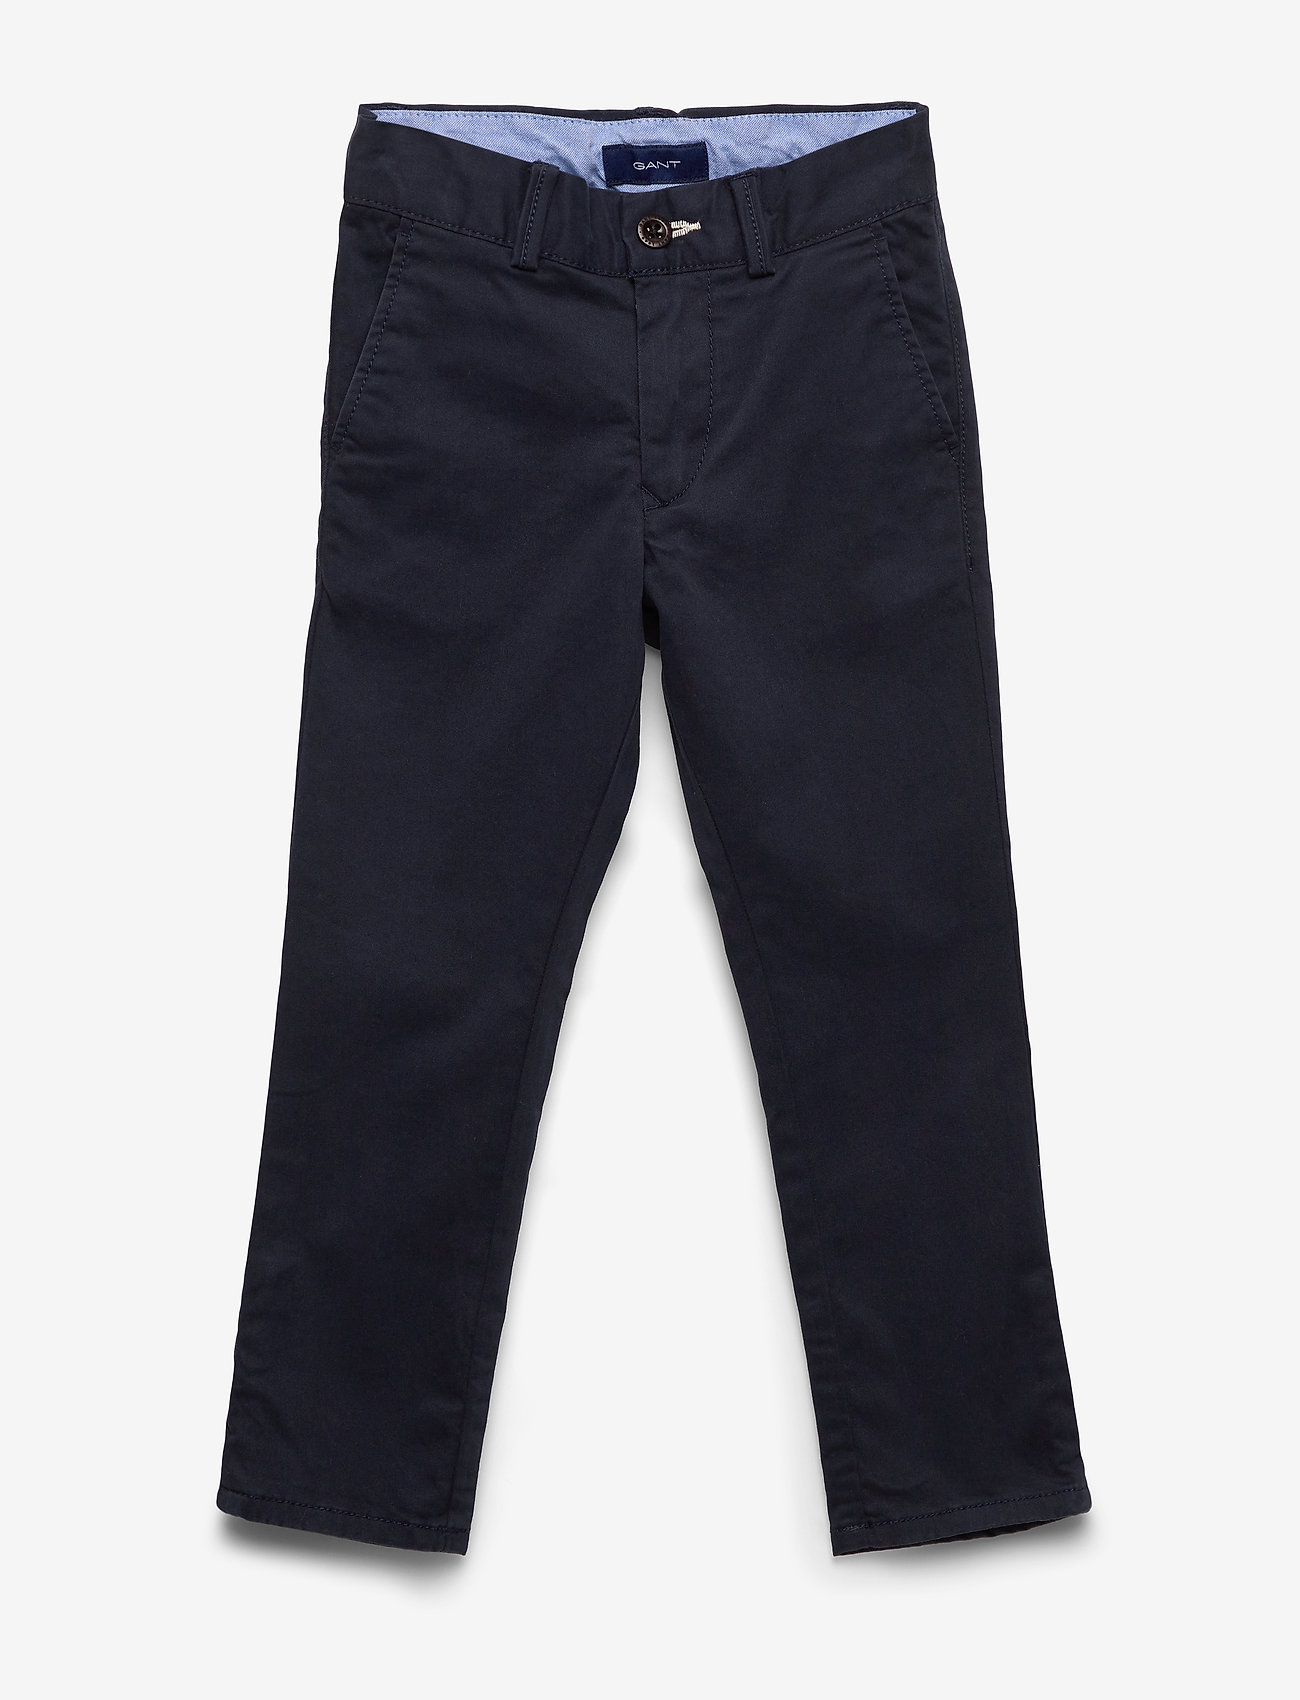 Gant - CHINO PANTS - trousers - evening blue